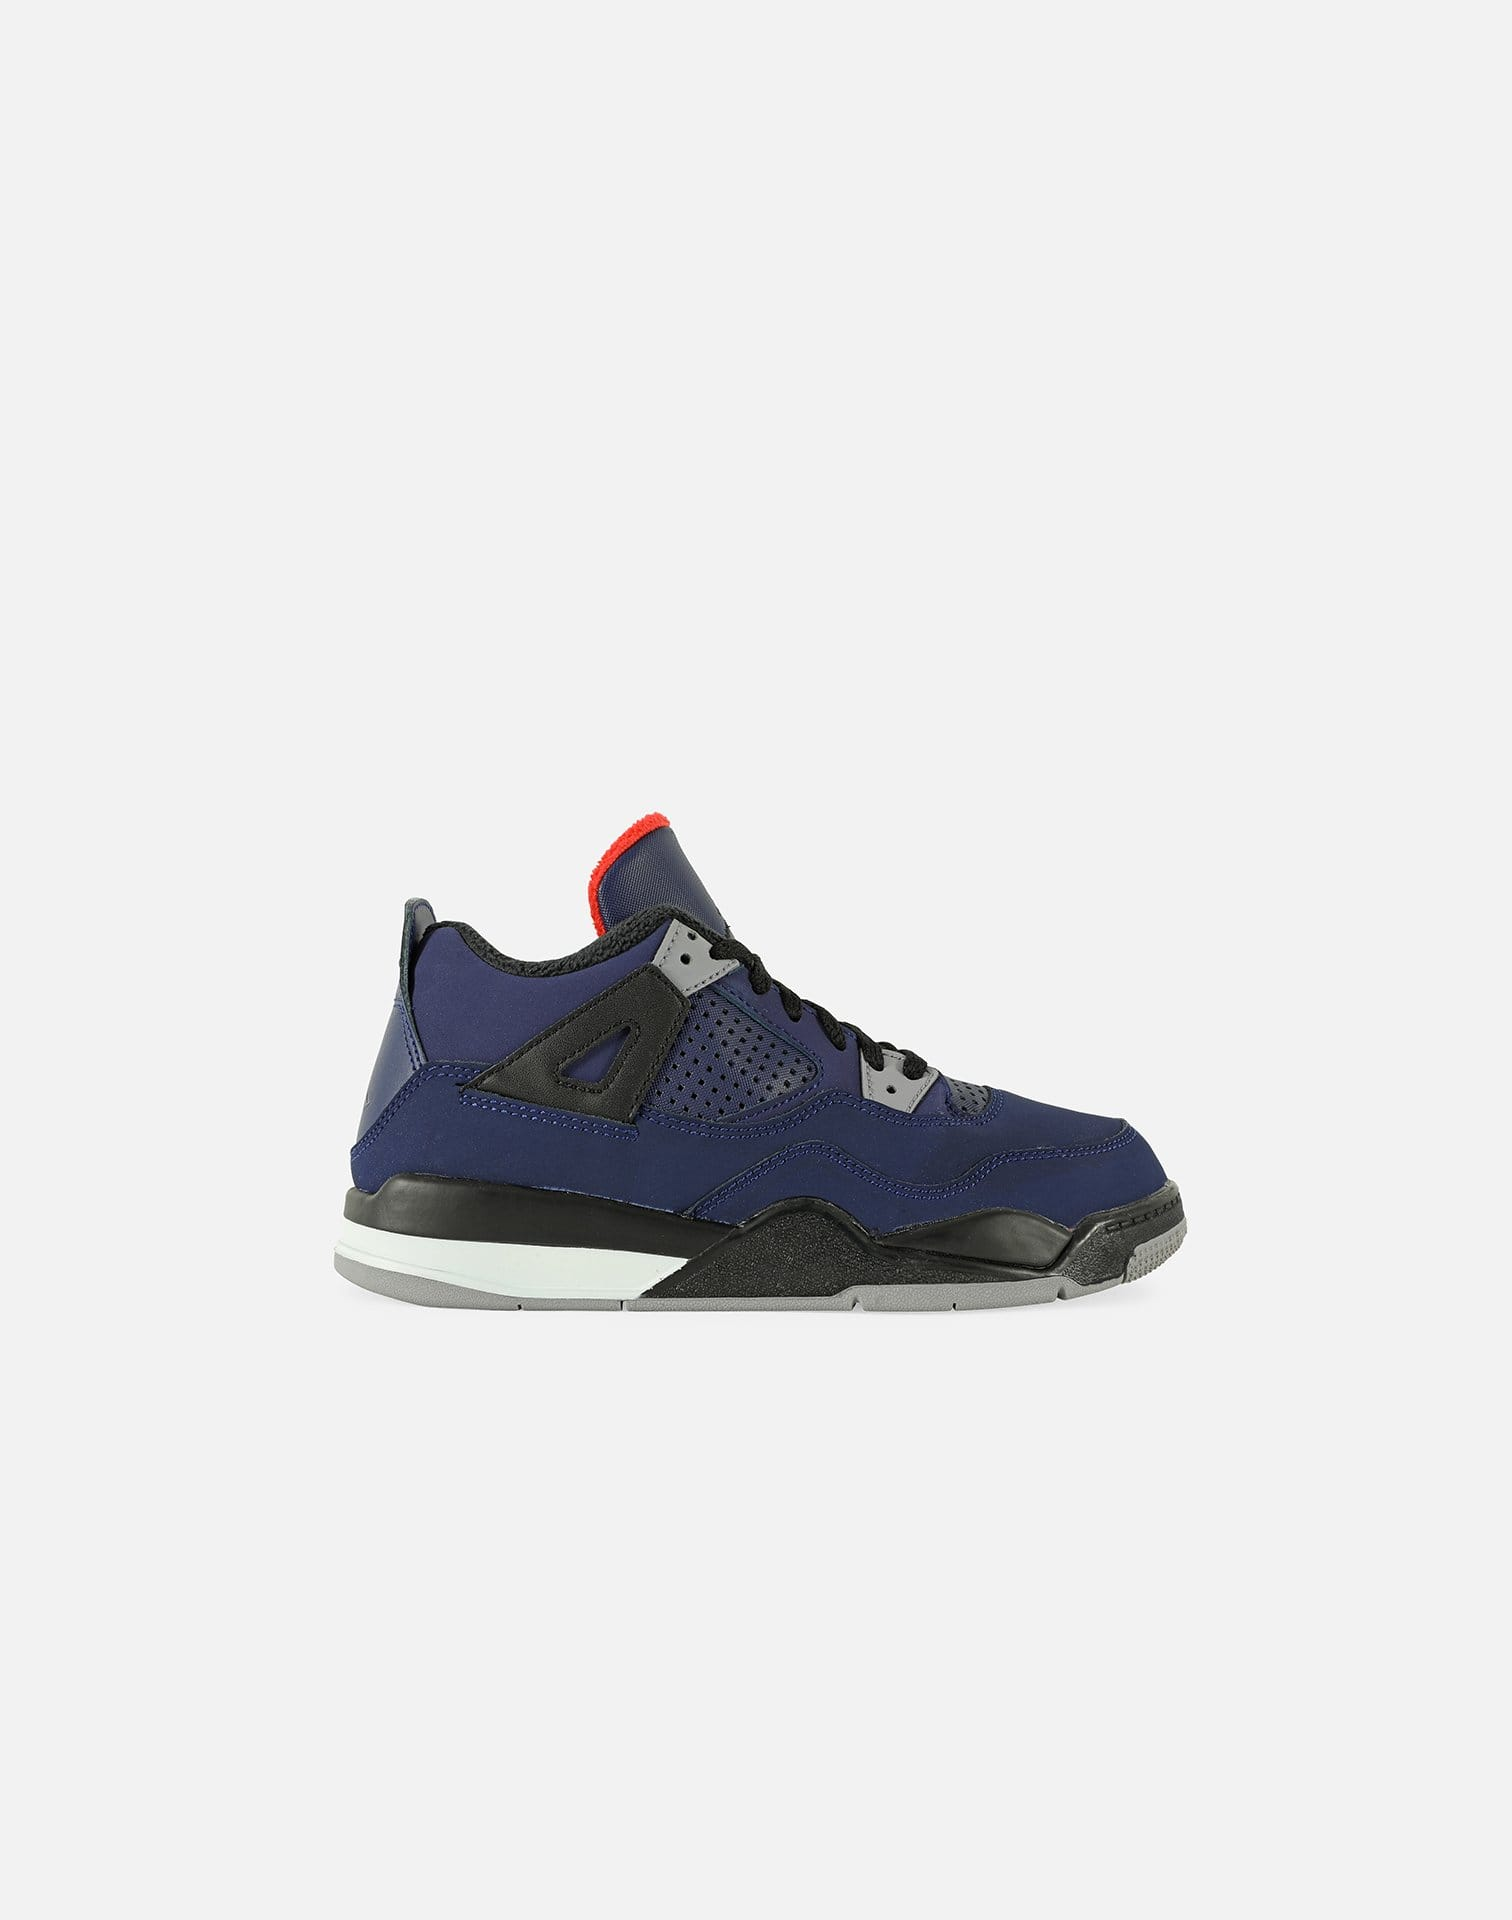 Jordan AIR JORDAN RETRO 4 WNTR PRE-SCHOOL